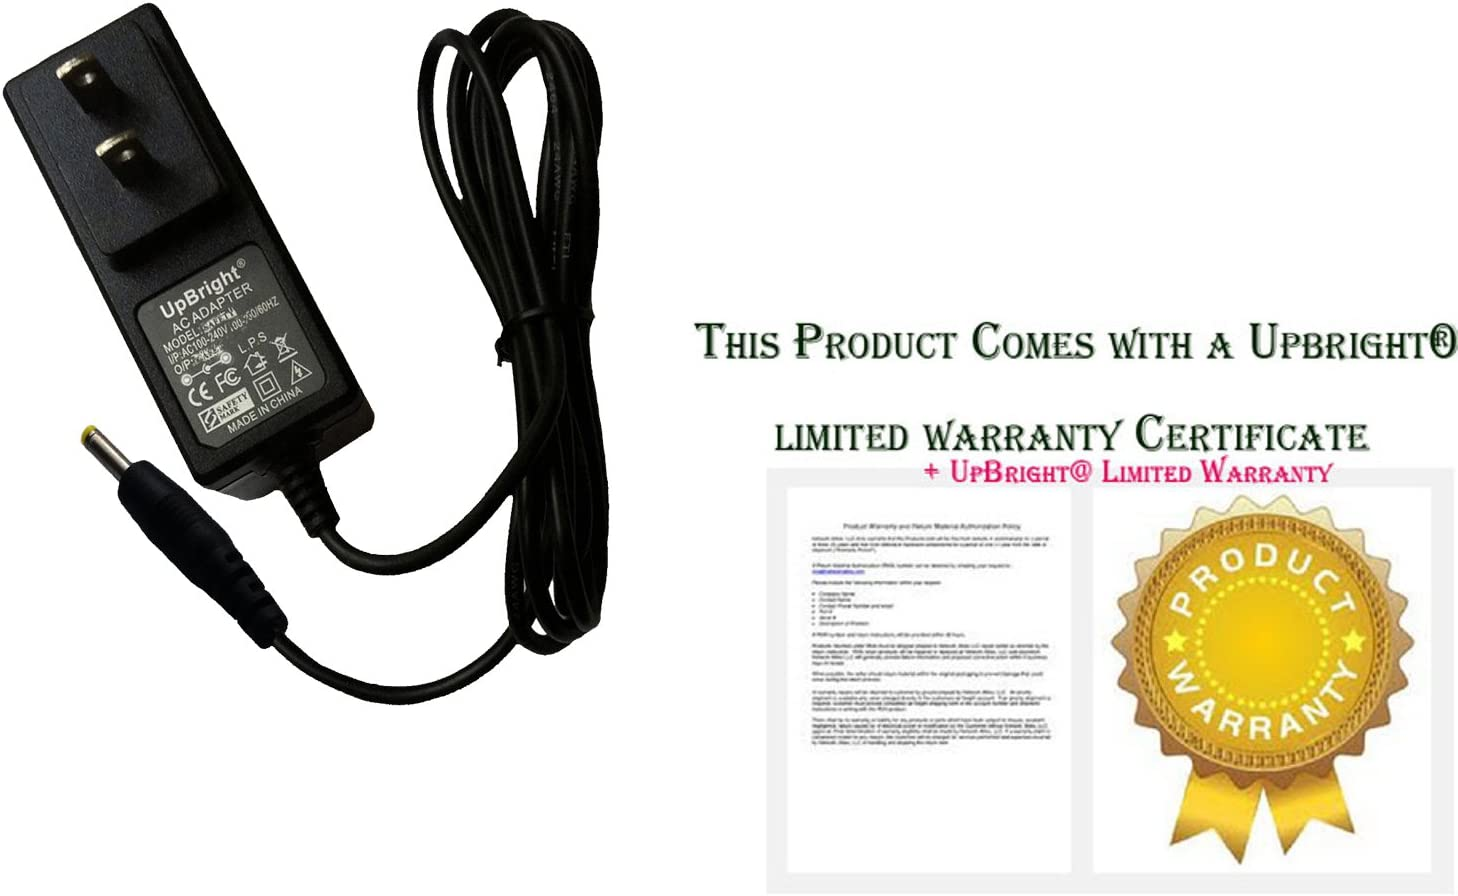 MZ604 MZ 604 Google Android Tablet PC Marg USB Data Sync Cable Cord Lead for Motorola XOOM 1090-T56MT1 IHDT56MT1 109O 109O-T56MT1 109OT56MT1 10.1